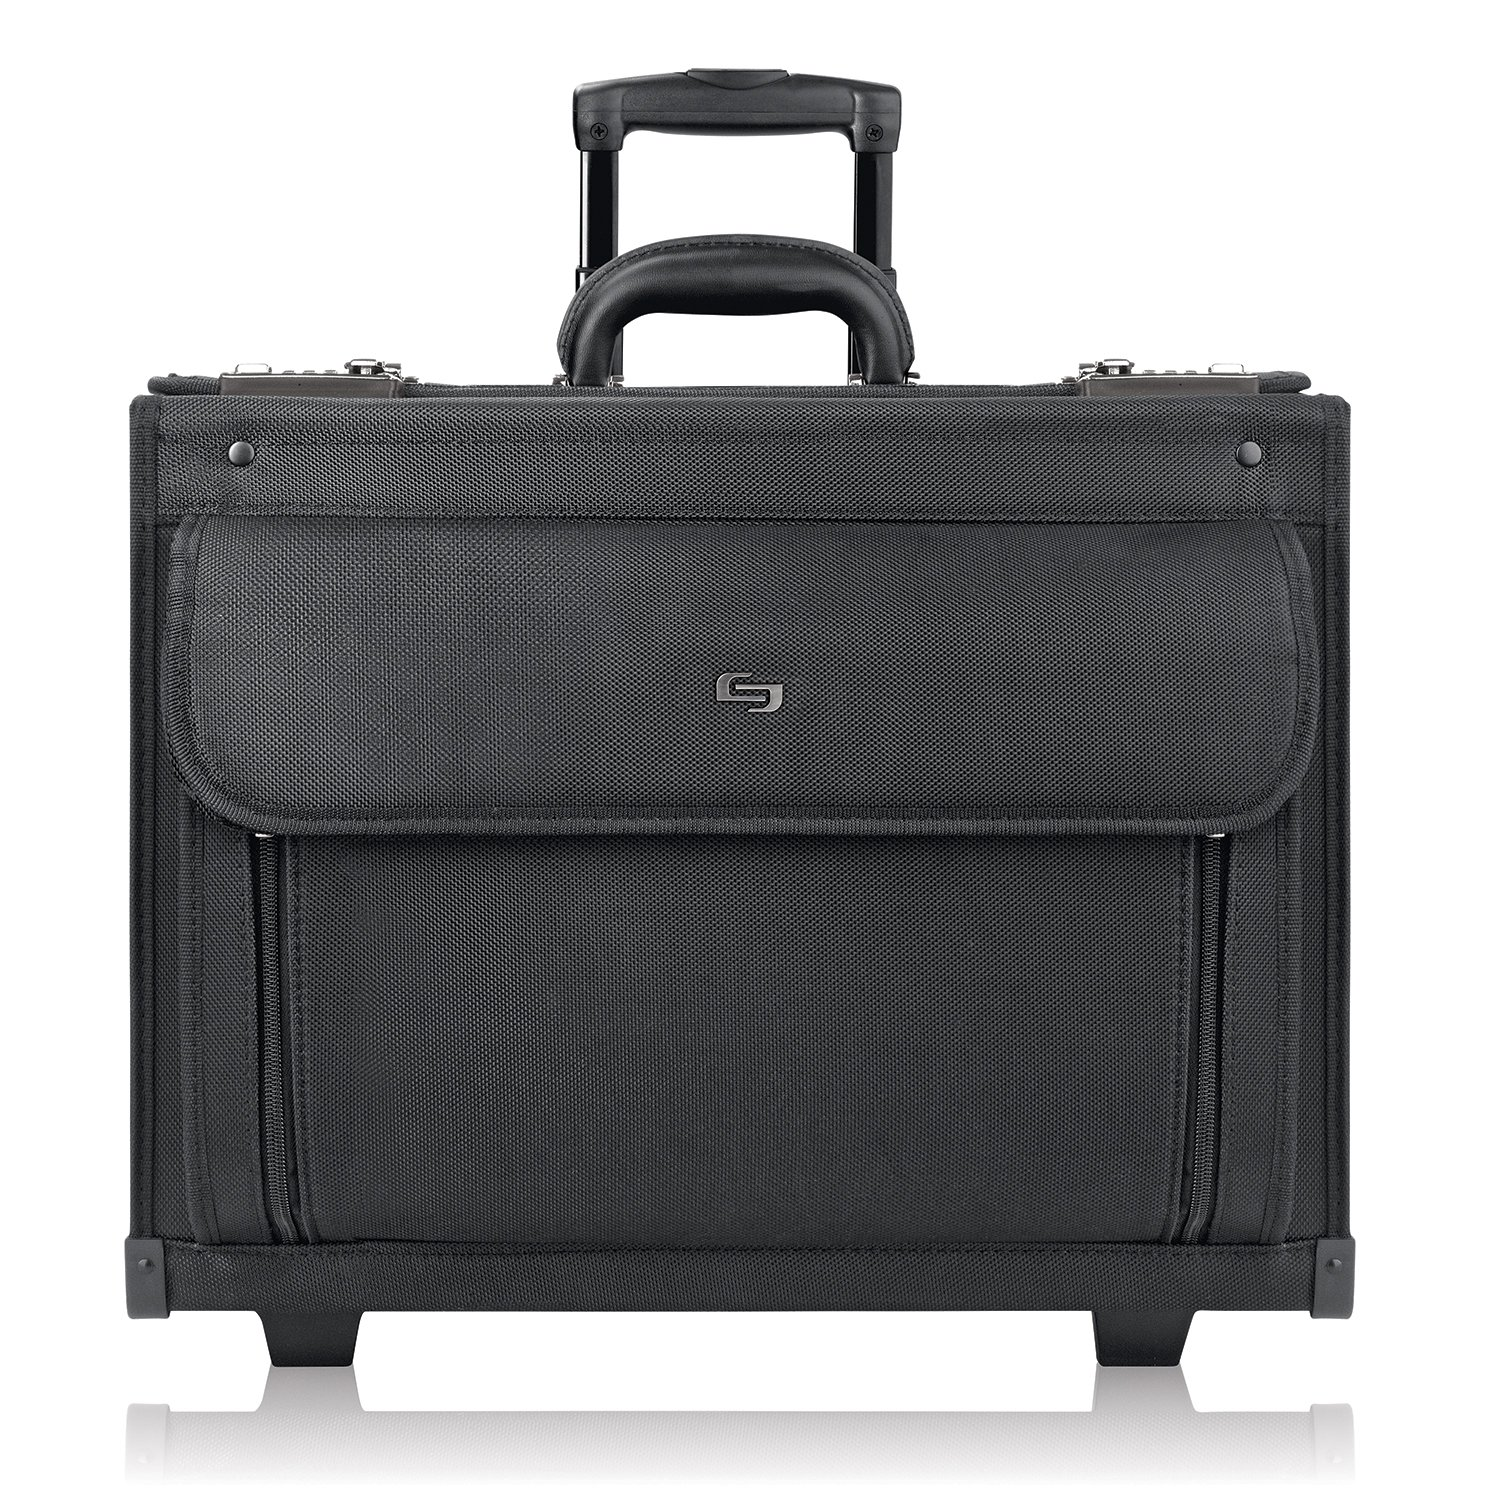 Solo Classic 17.3 Inch Rolling Catalog Case, Black by SOLO